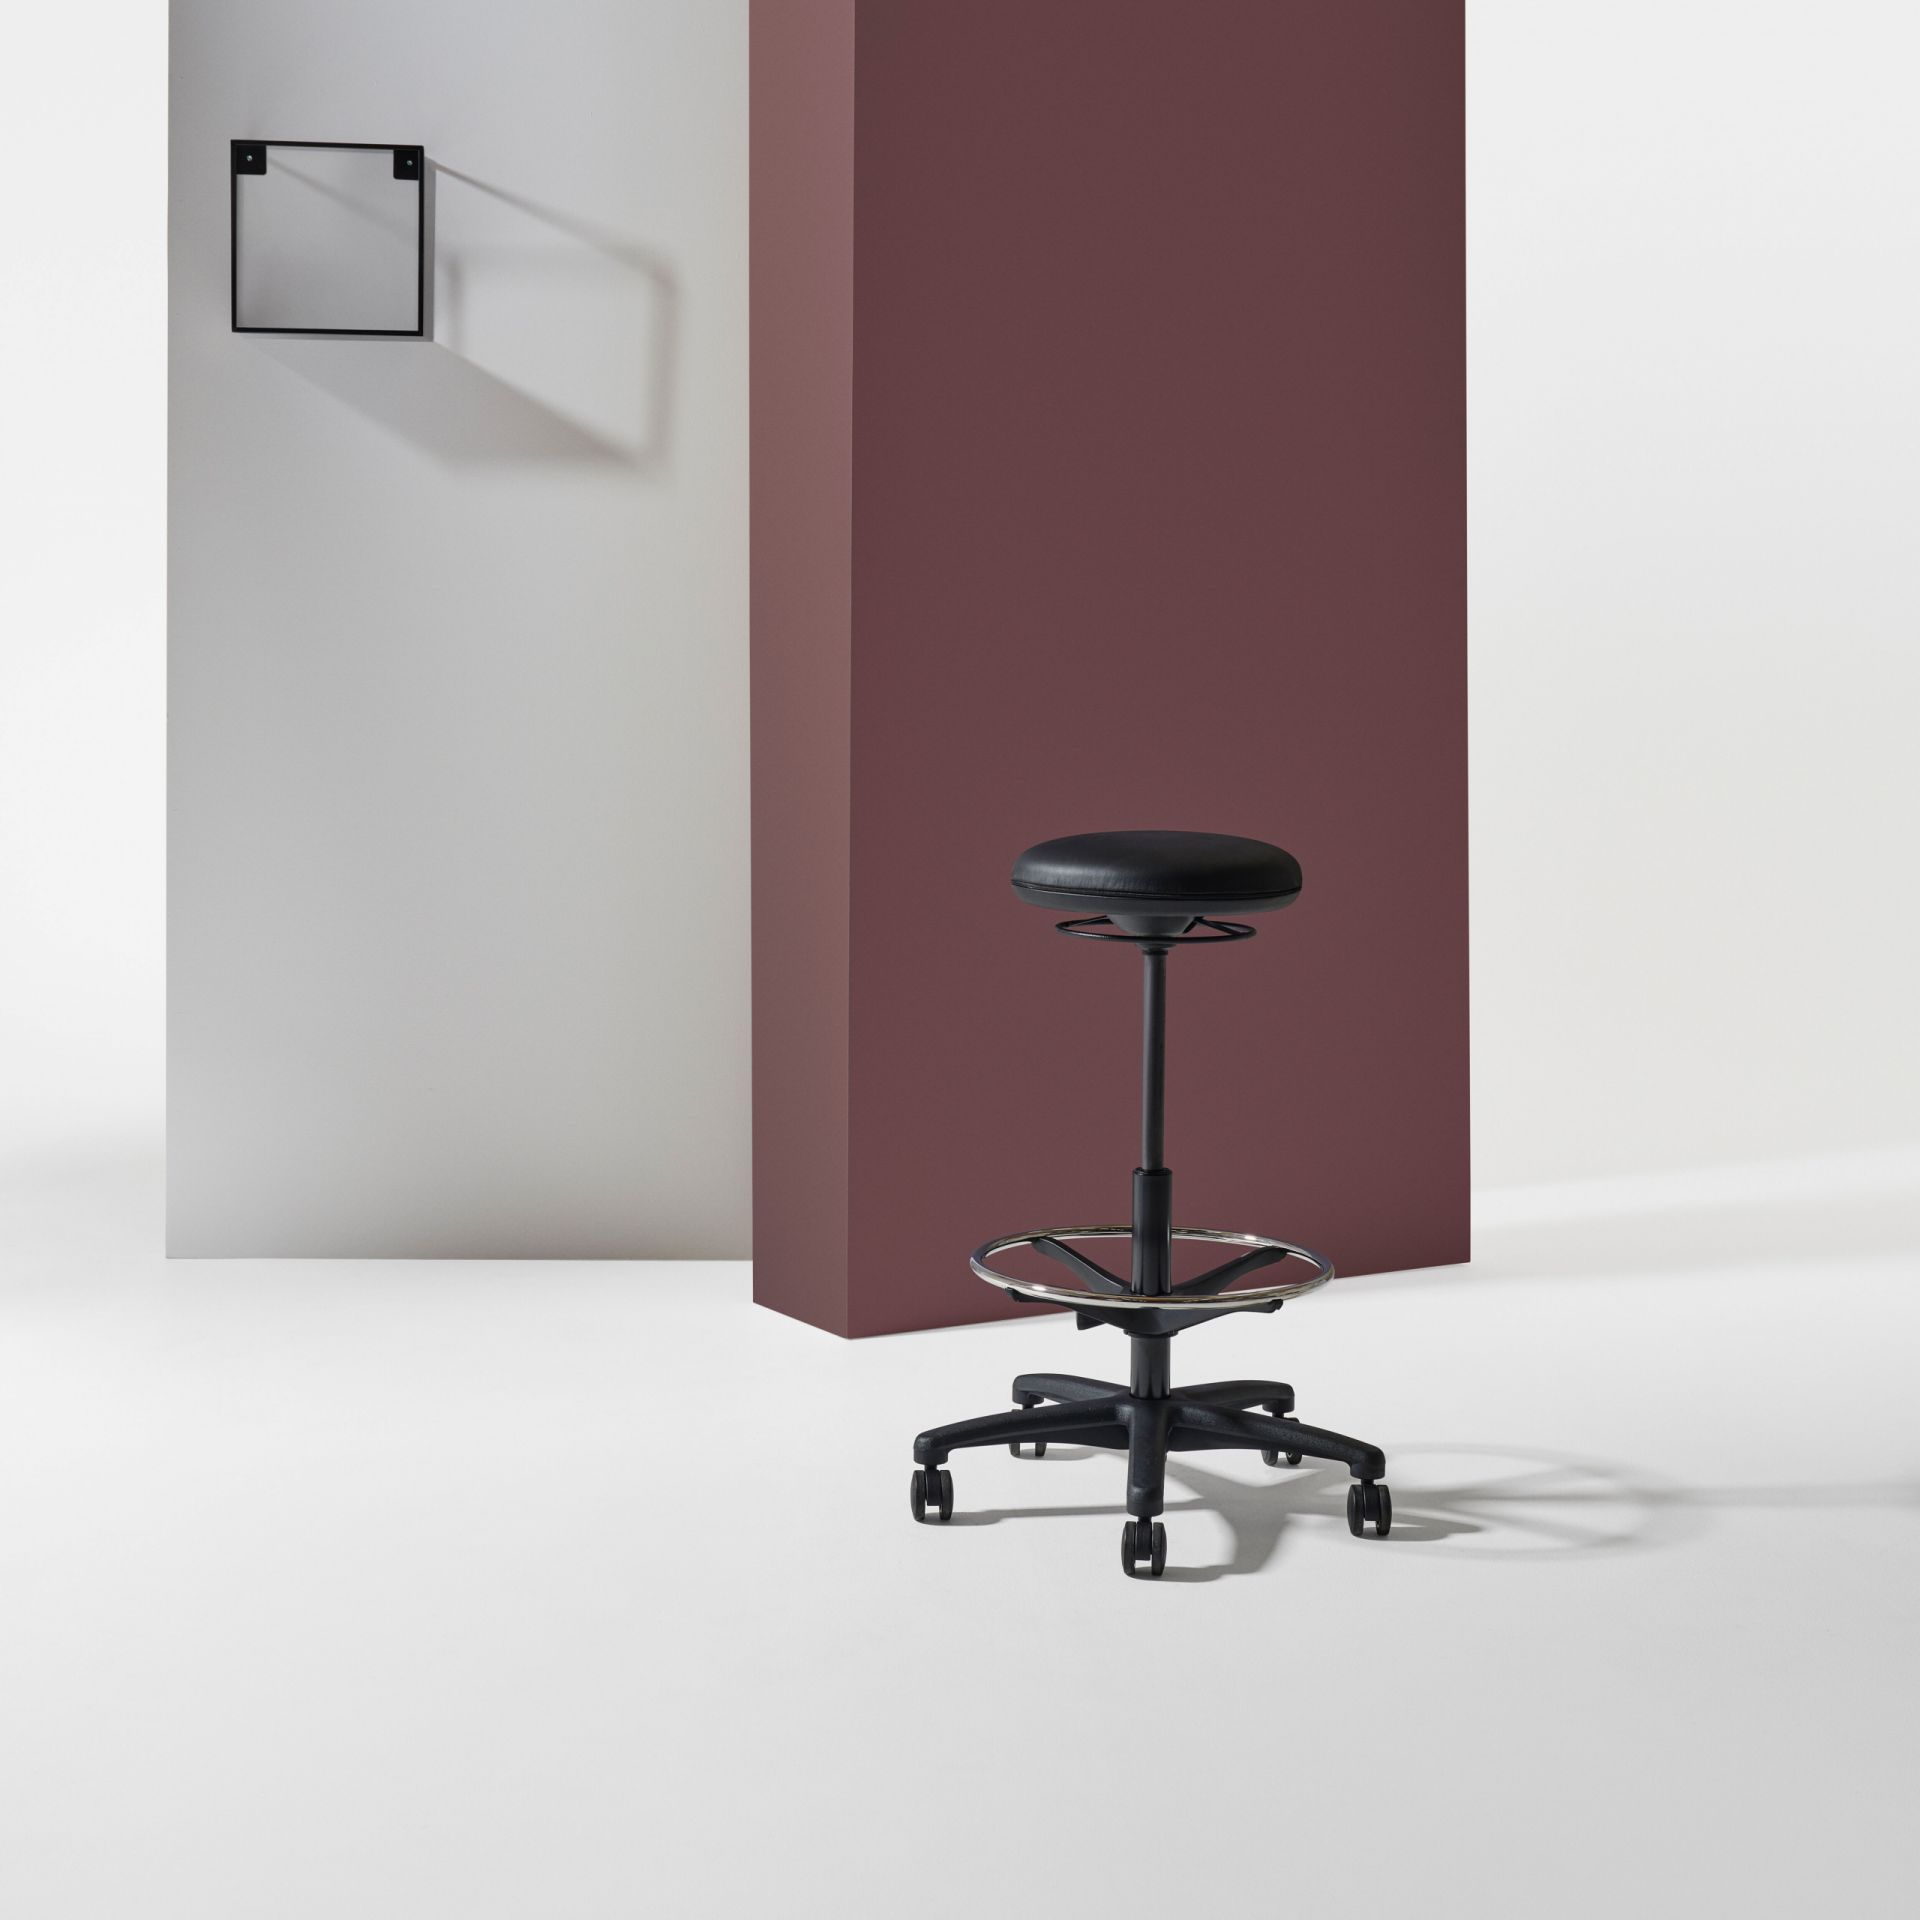 Savo Joi Joi workchair product image 2